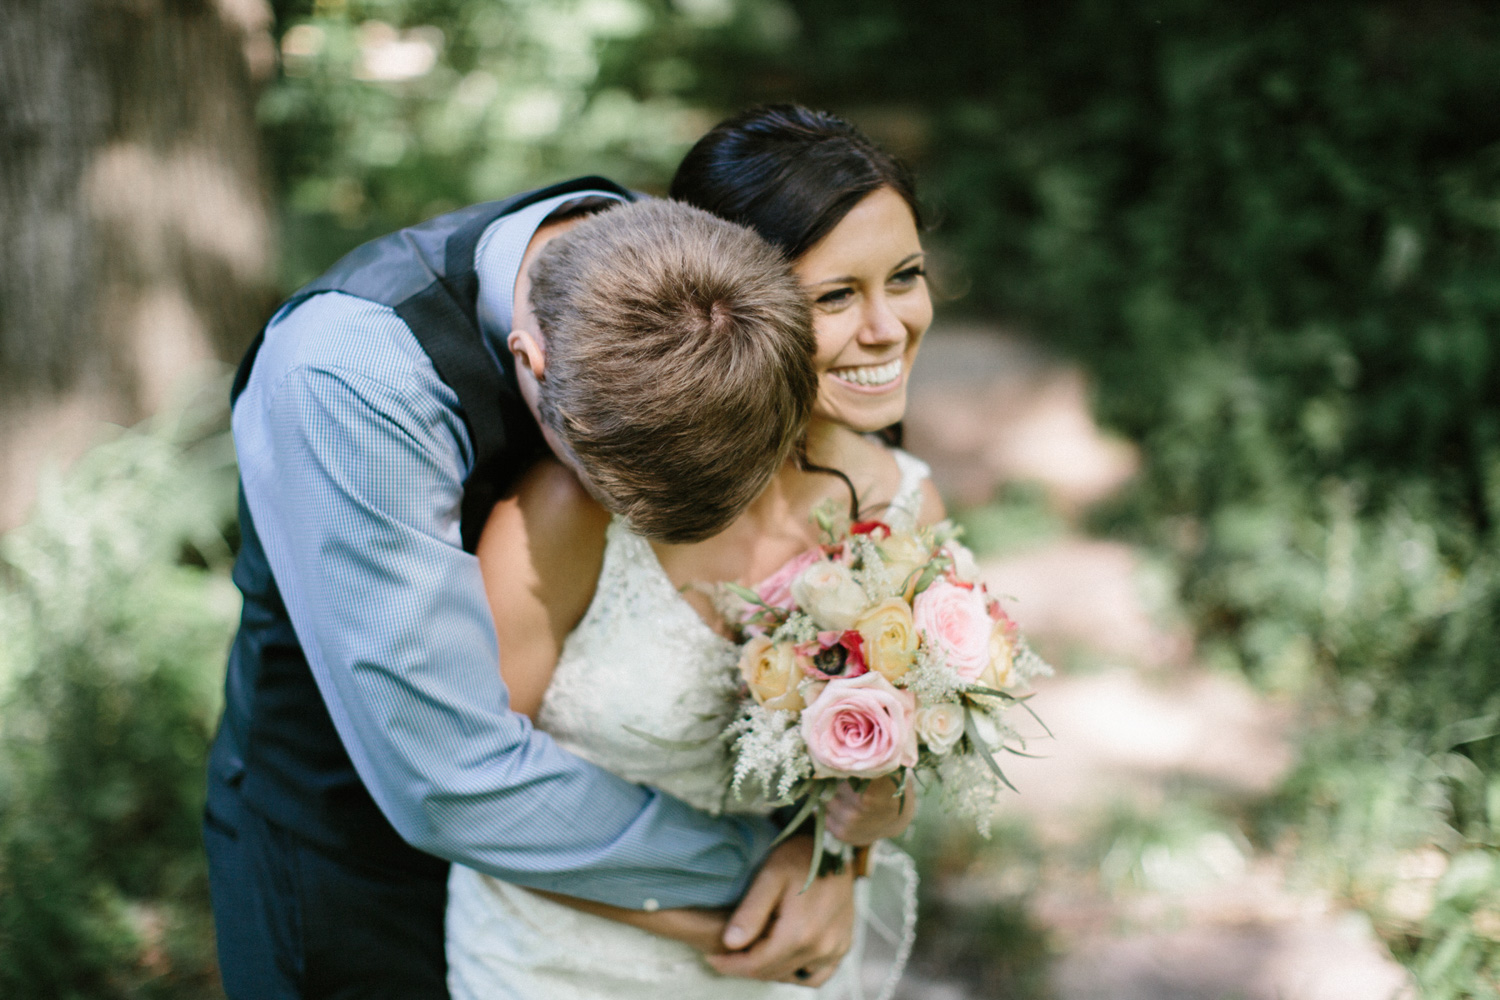 Outdoor_Wedding_SiouxFalls_MaryJoWegnerArboretum_Photographer_Calli&Jon_107.jpg